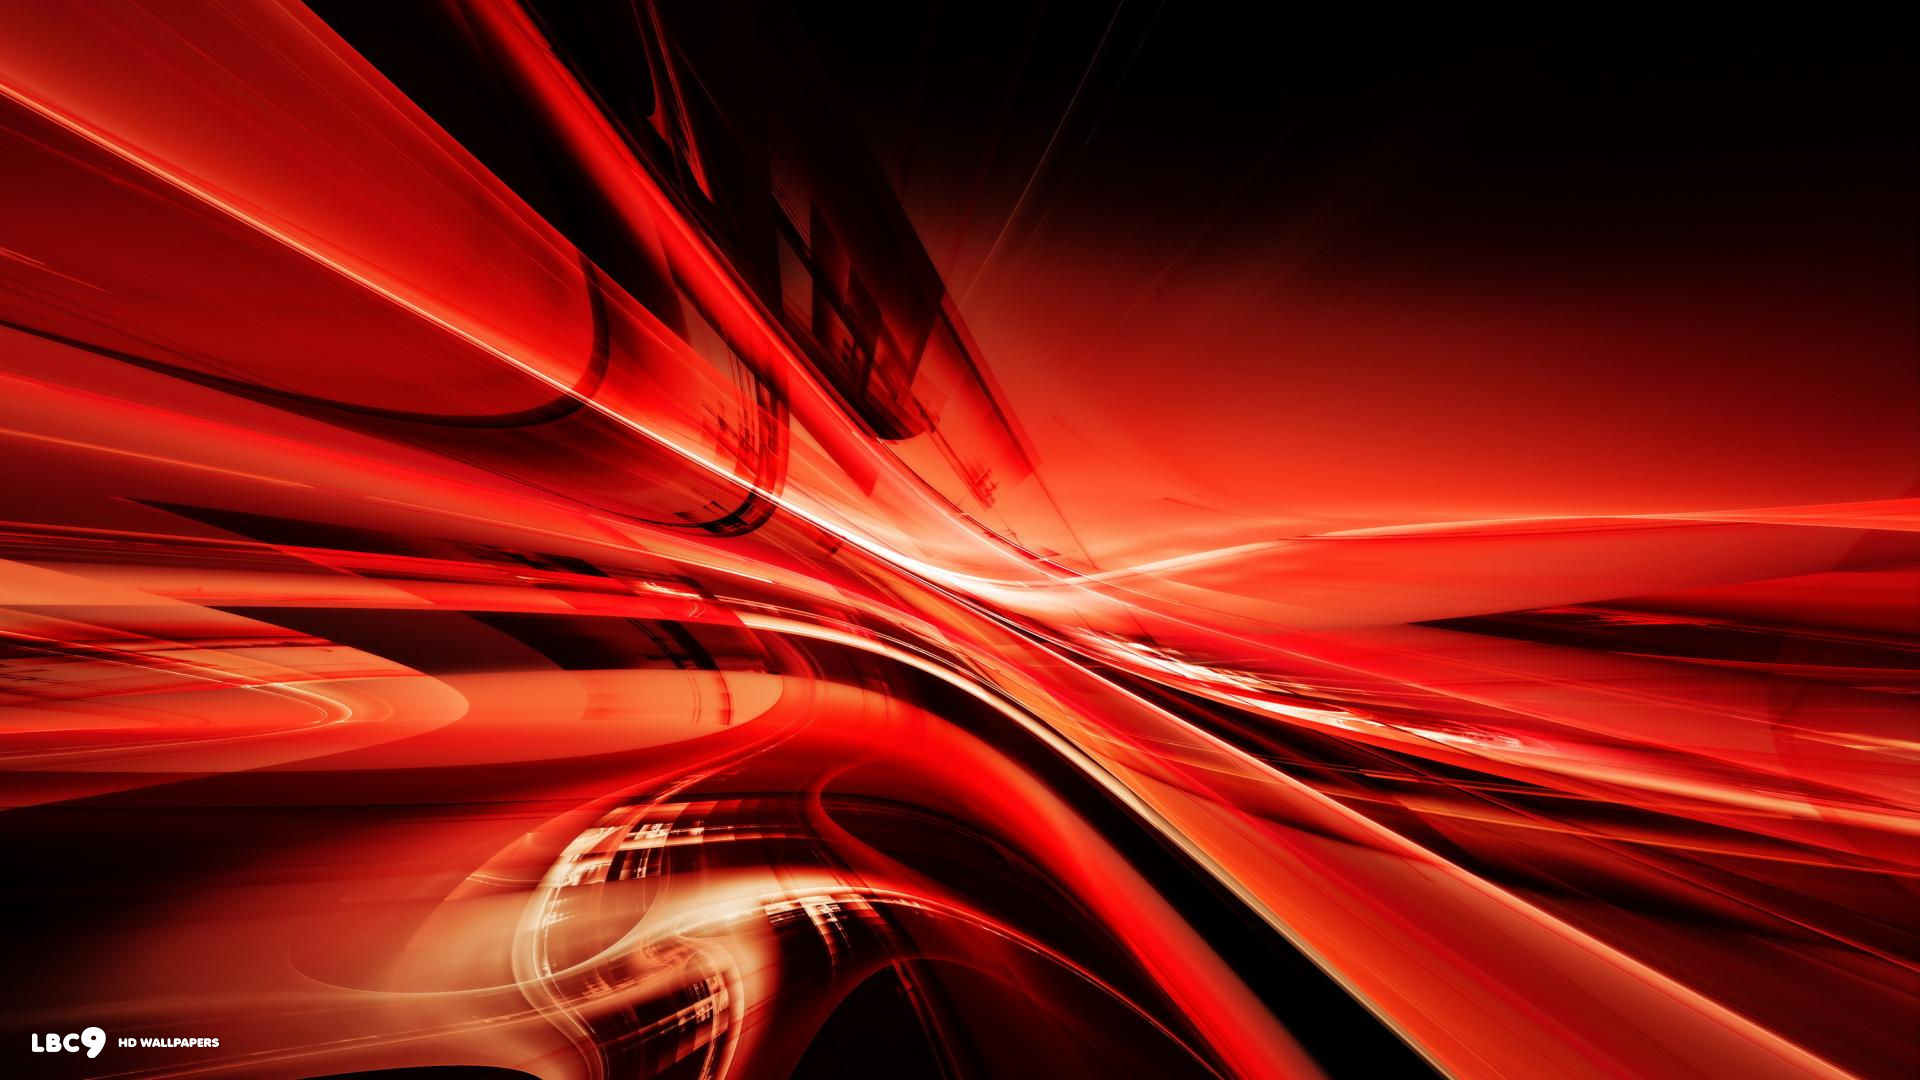 red abstract lines wallpaper 18/26 | abstract hd backgrounds